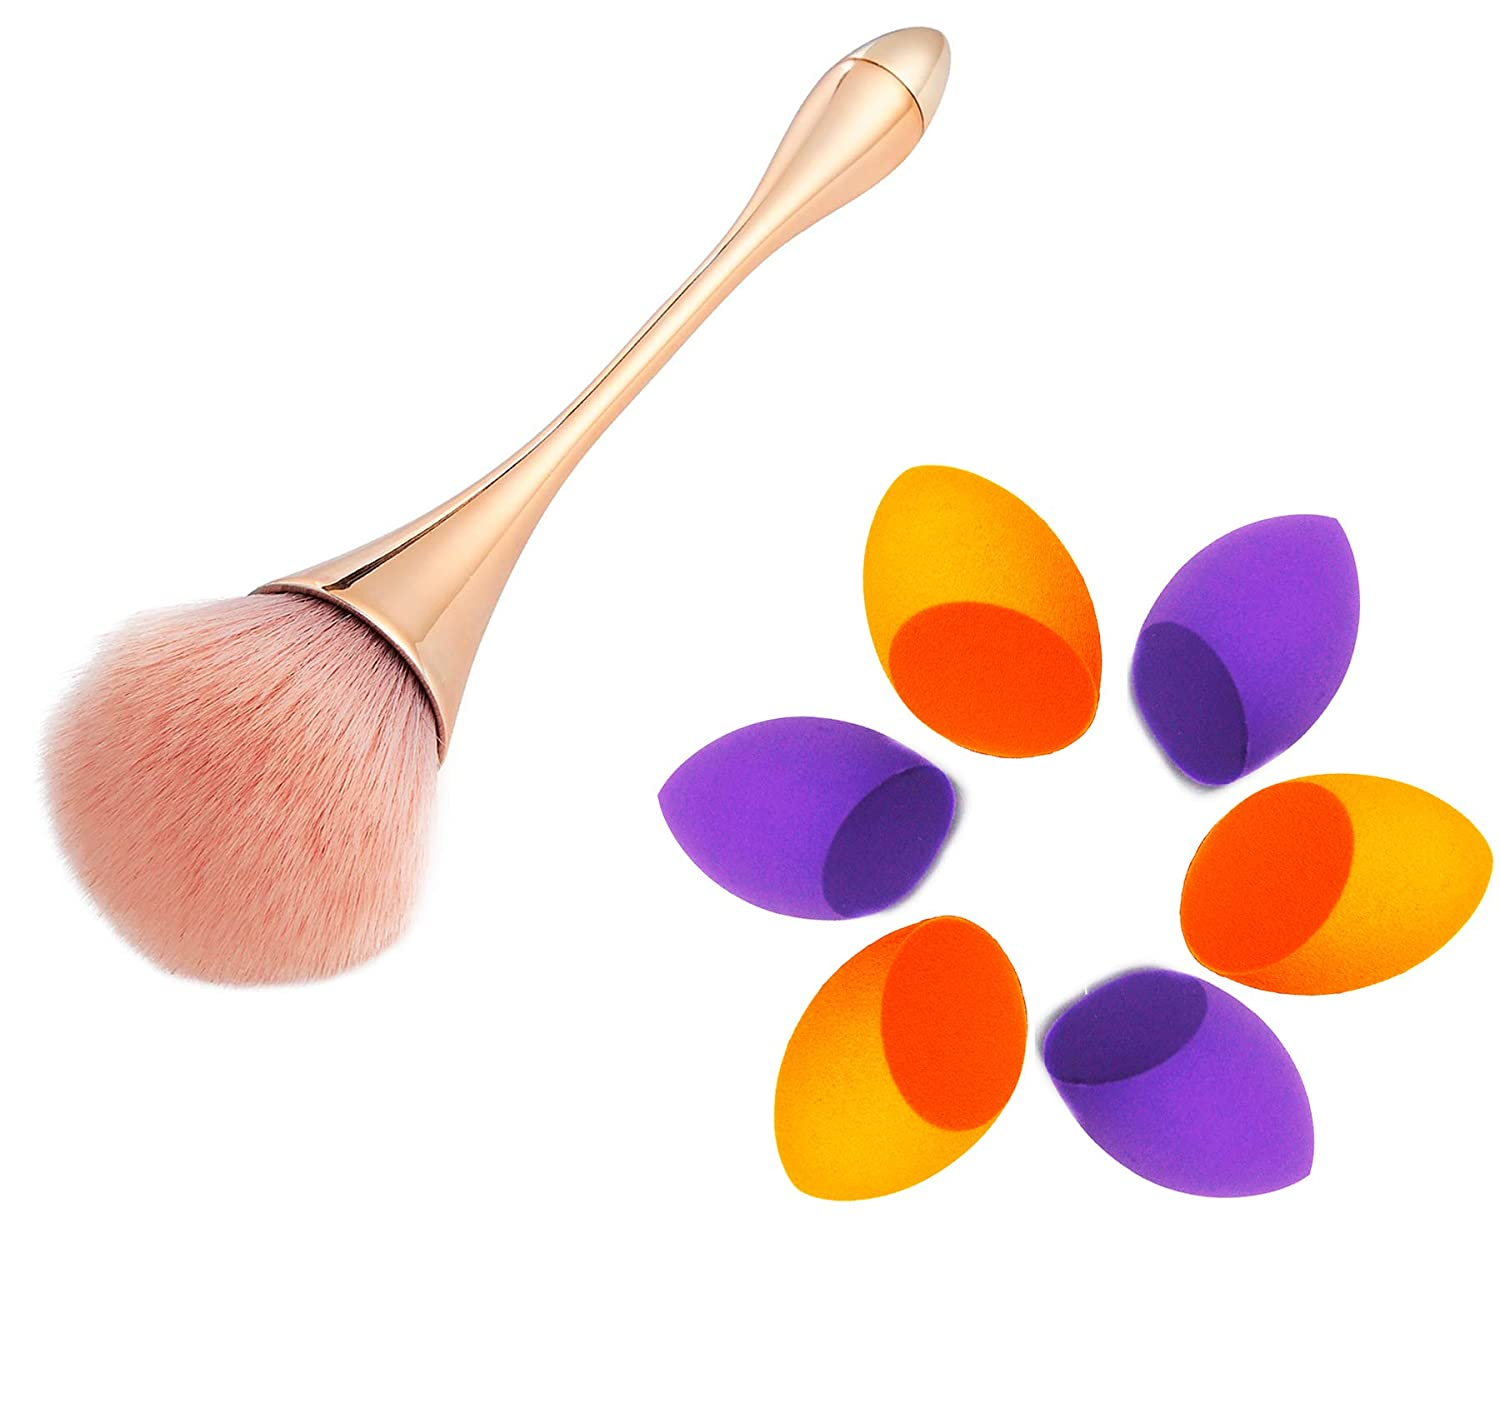 6 Makeup Sponge Blenders with 1 Large Beautiful Makeup Brush, Soft Latex-Free Beauty Sponges for Liquid Cream & Powder,Premium Cosmetic Brush Helps Build Smooth Even Coverage